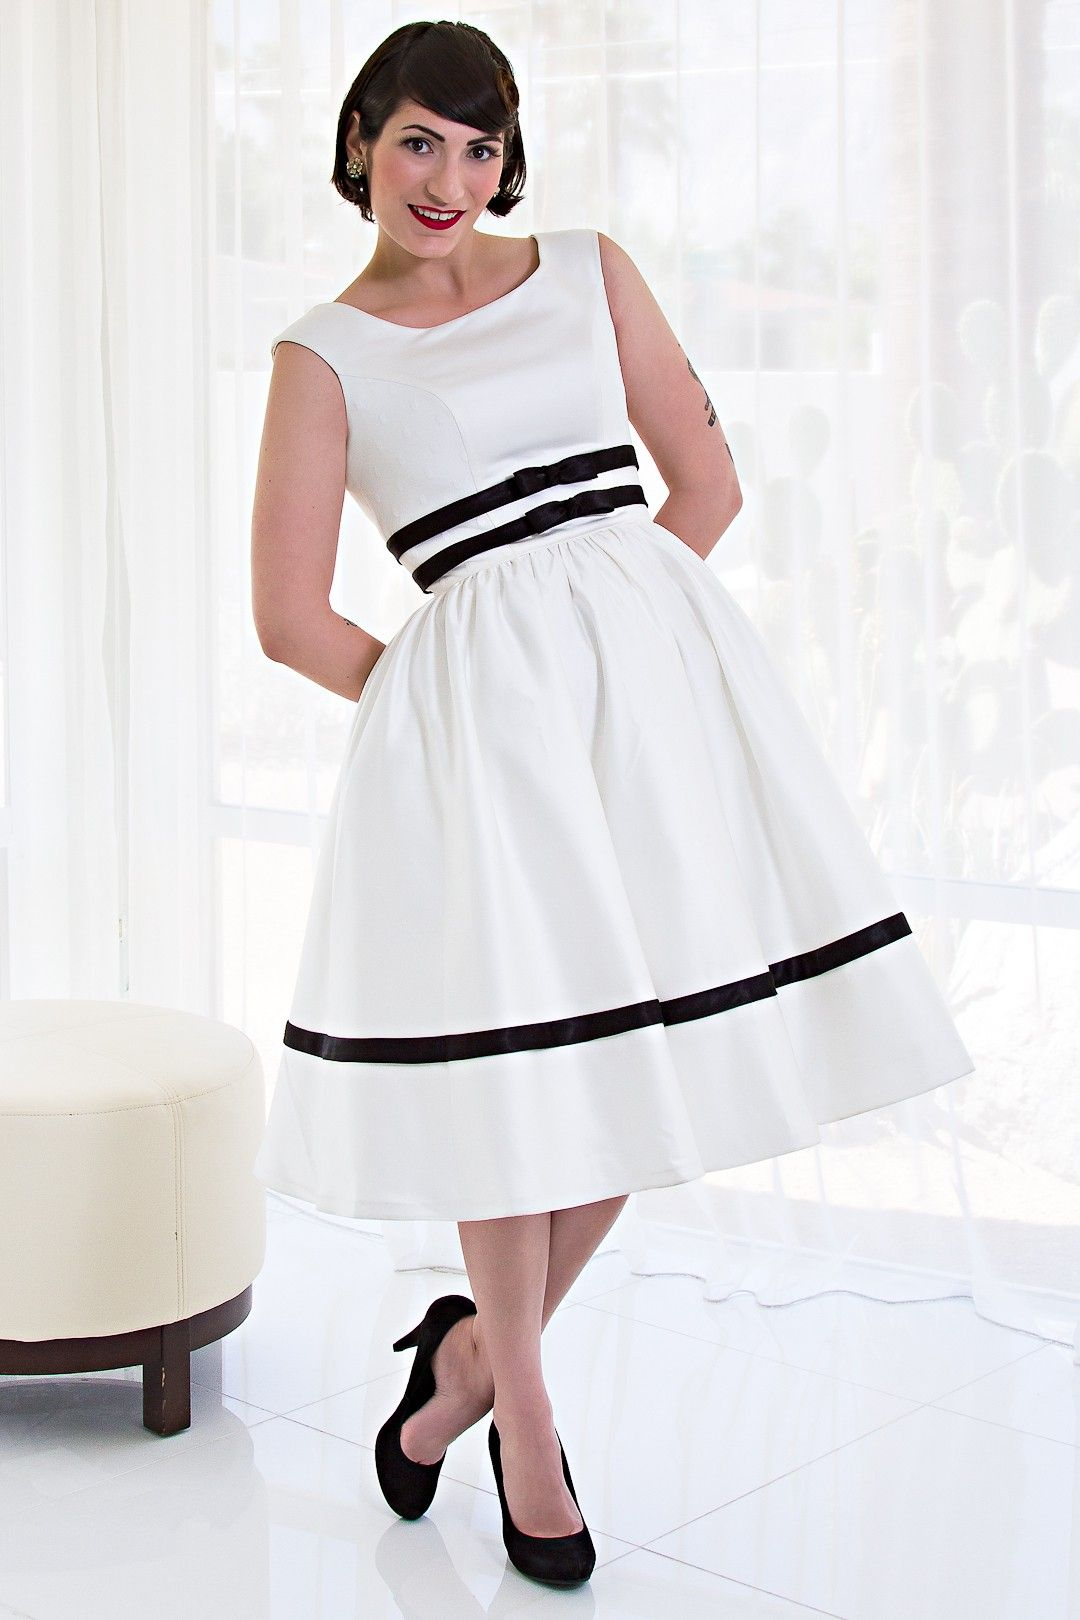 The newport beach dress dress me up pinterest newport beach